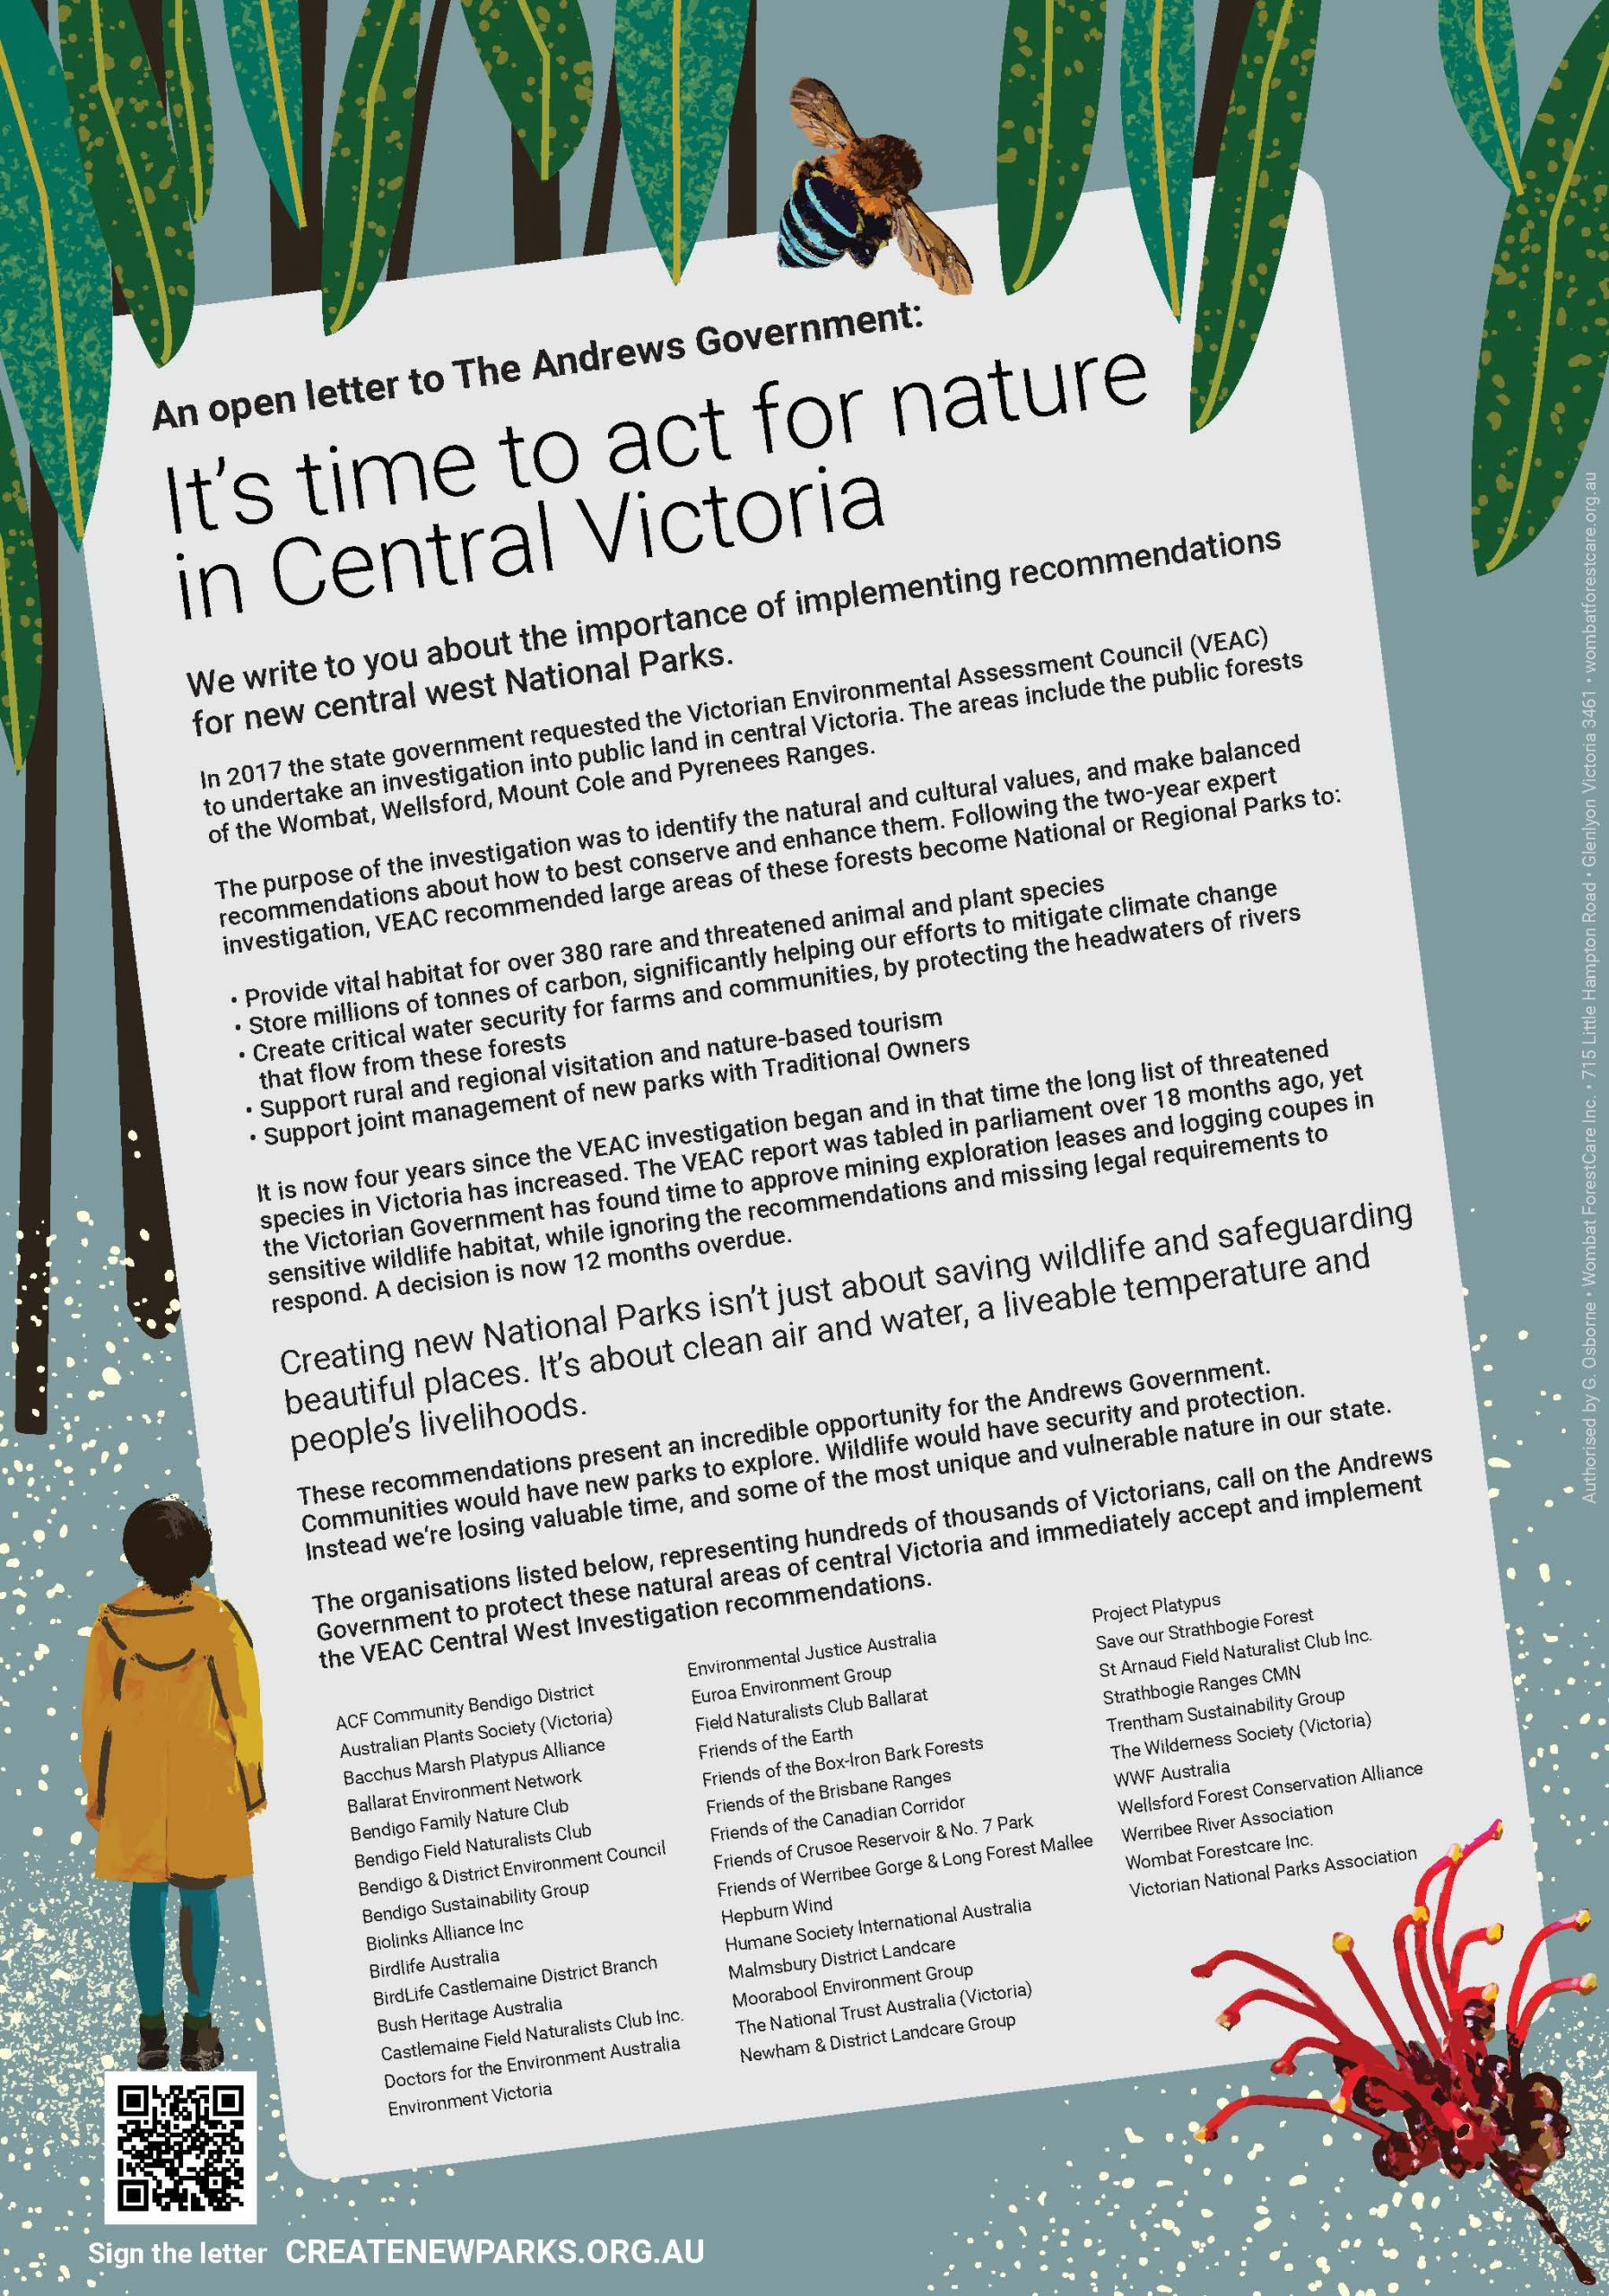 An open letter to the Andrews' Government: Less talk, more protection for nature